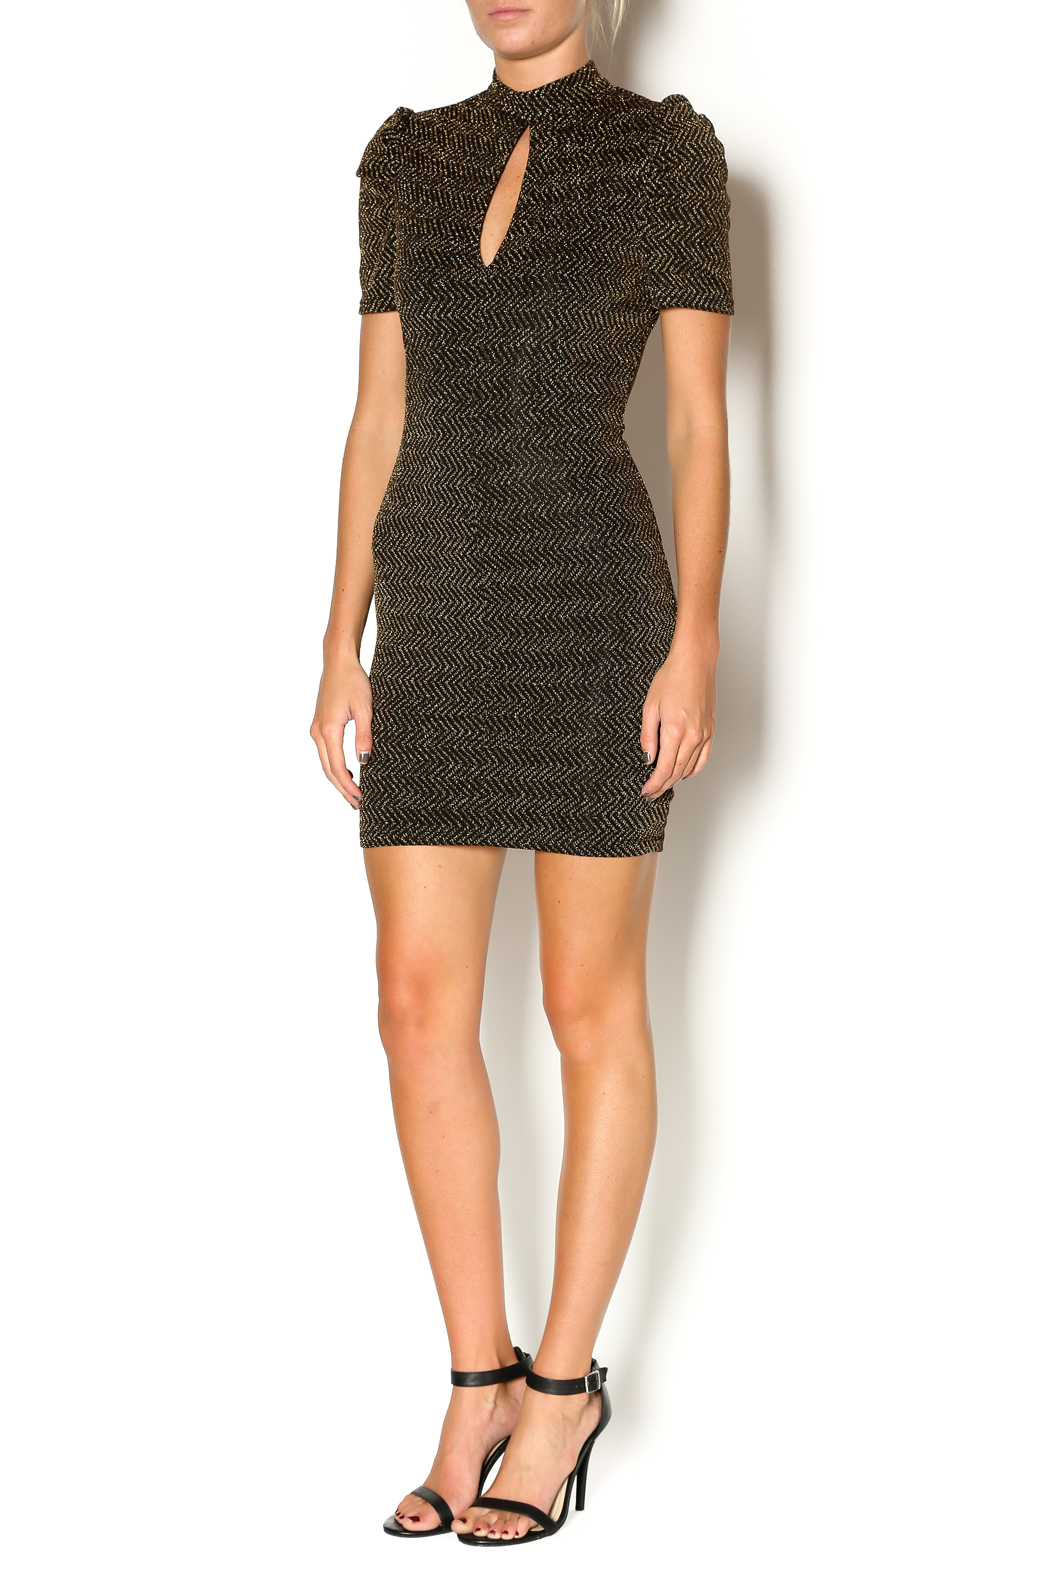 Abby & Taylor Black Gold Keyhole Dress - Front Full Image